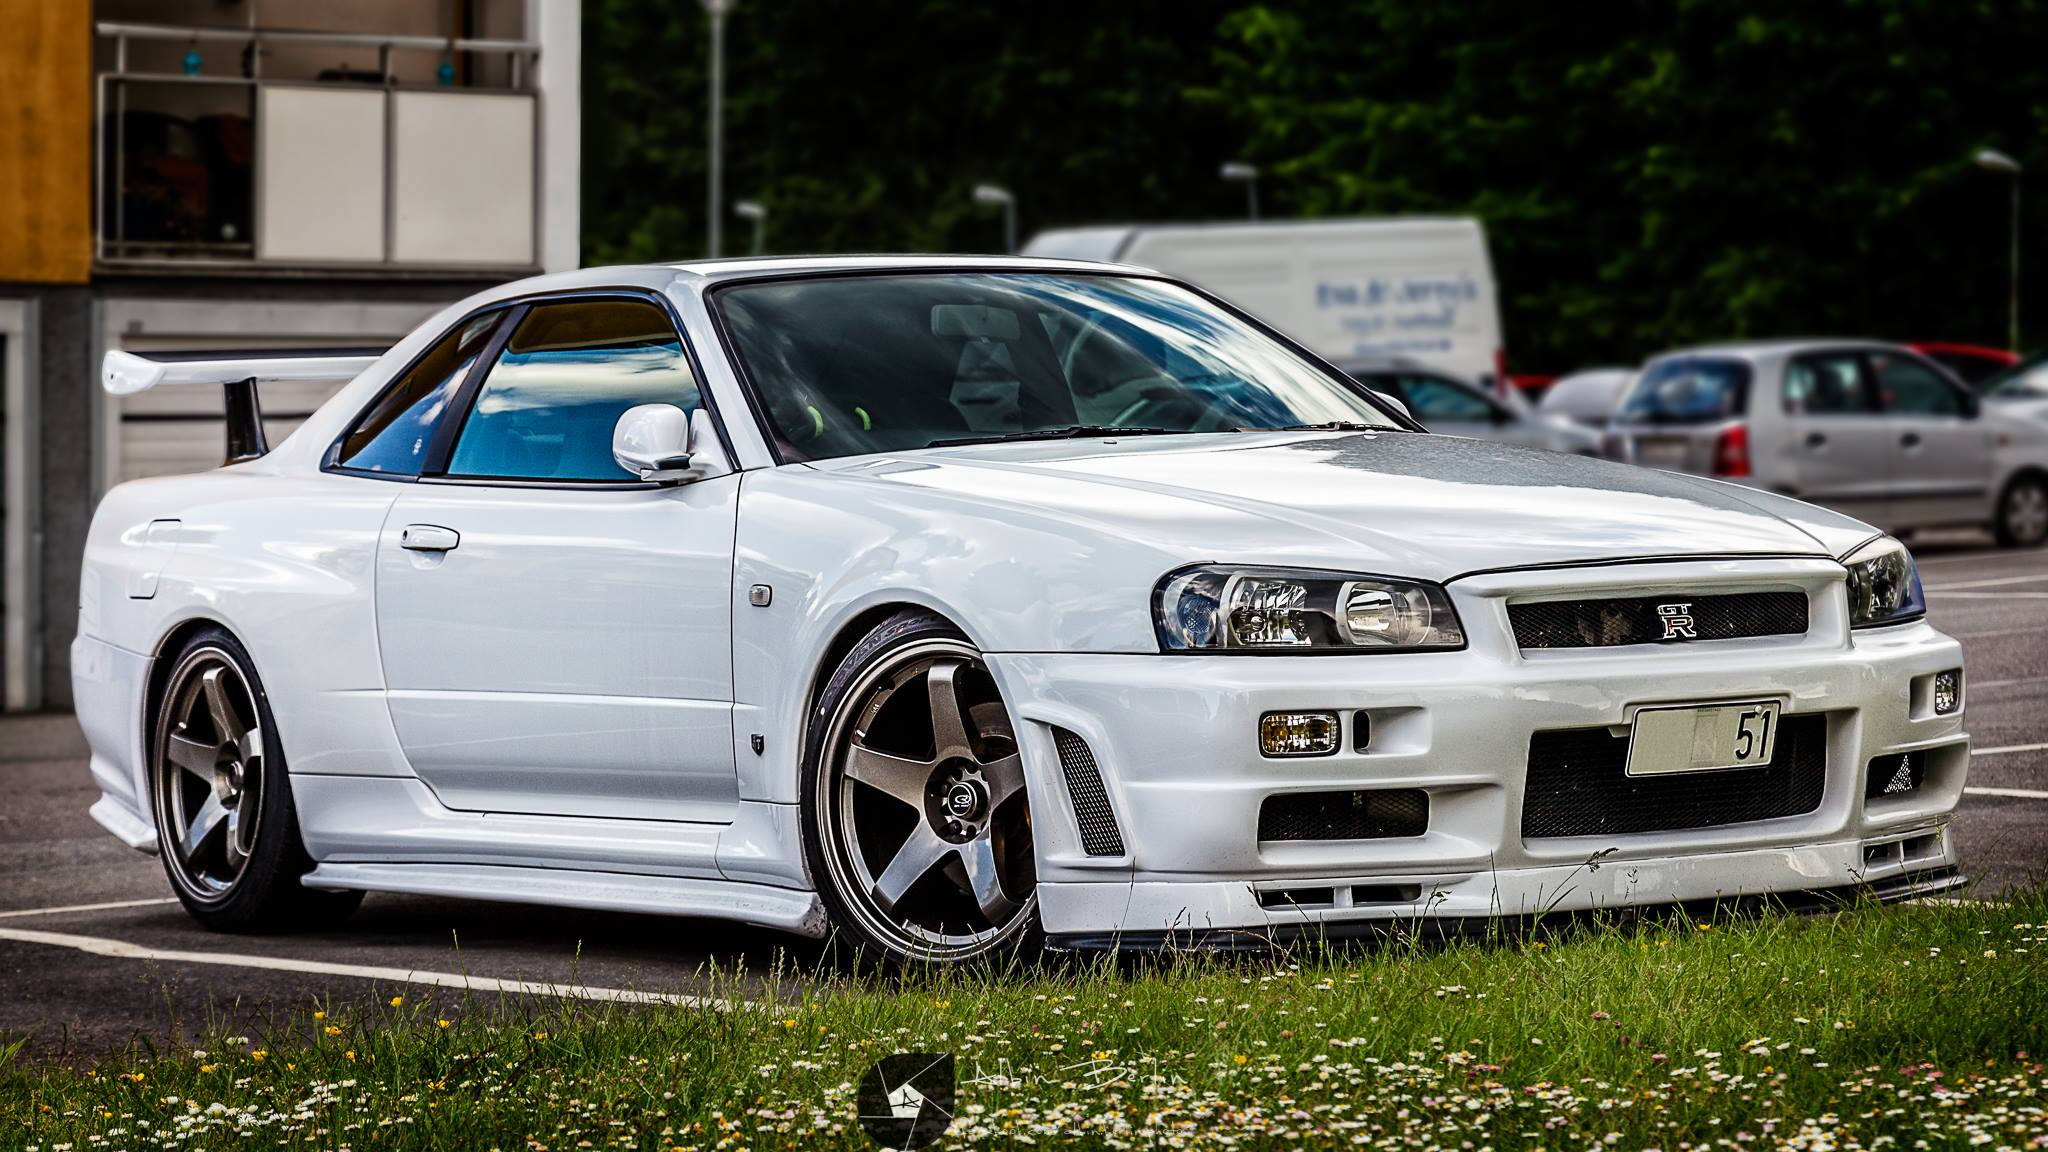 10 Magical Japanese Cars From The 80's and 90's! - Garage Dreams